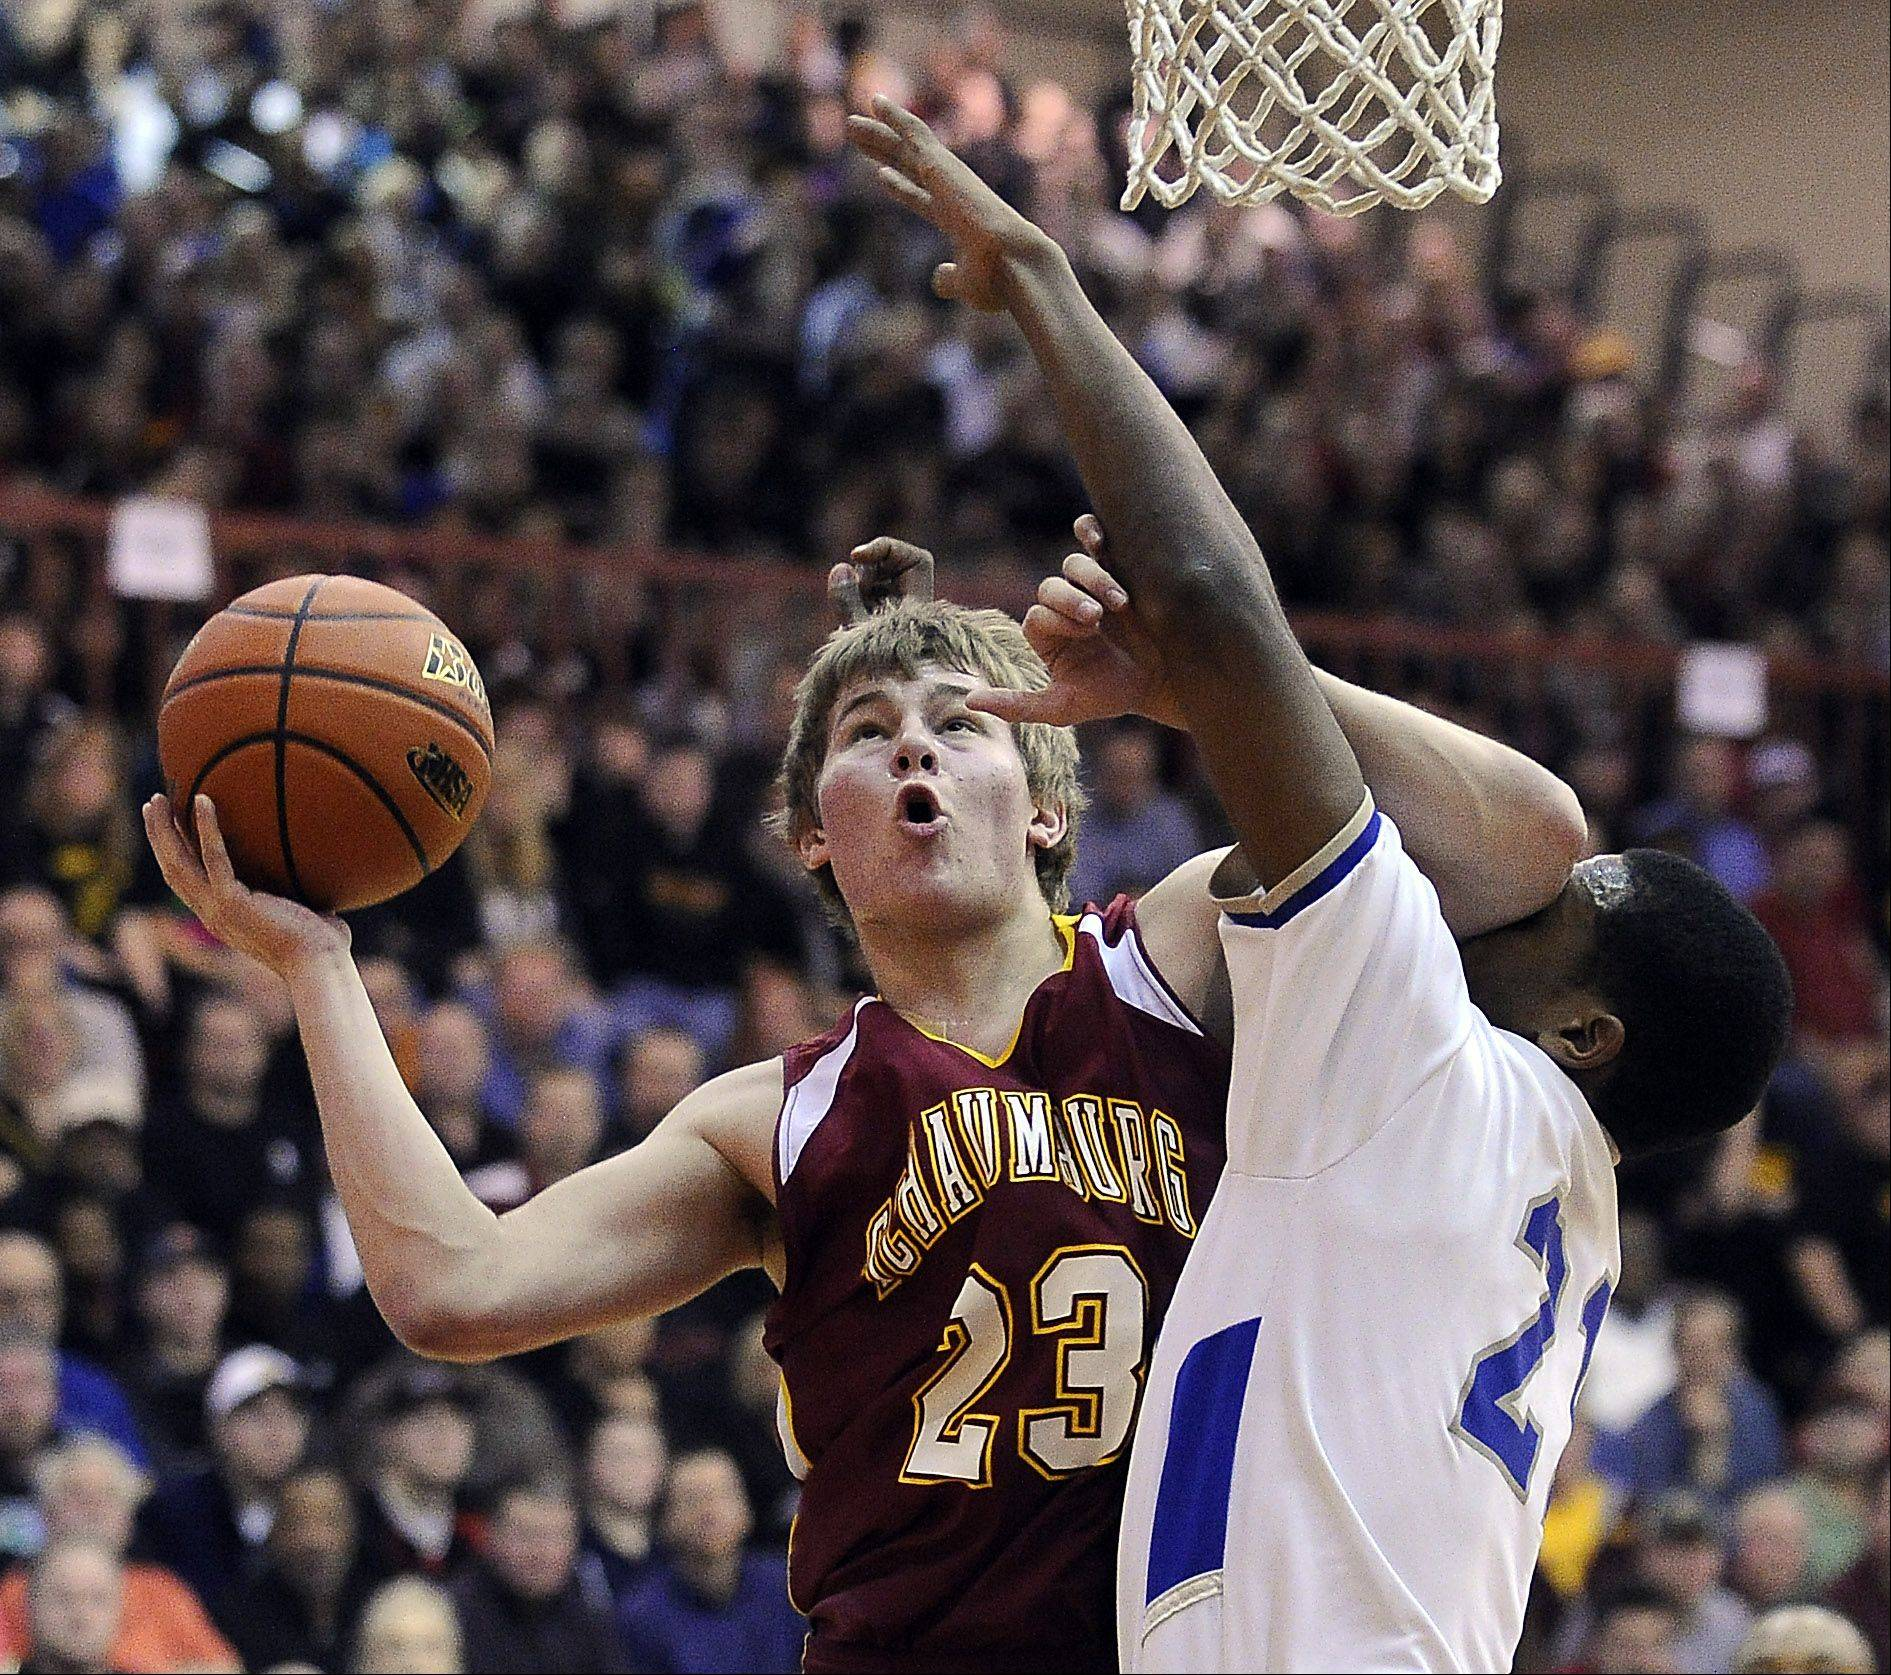 Schaumburg's Kyle Bolger, here getting to the basket as Proviso East's Sterling Brown defends, brings an uncommon awareness and skill set to the Saxons' attack.